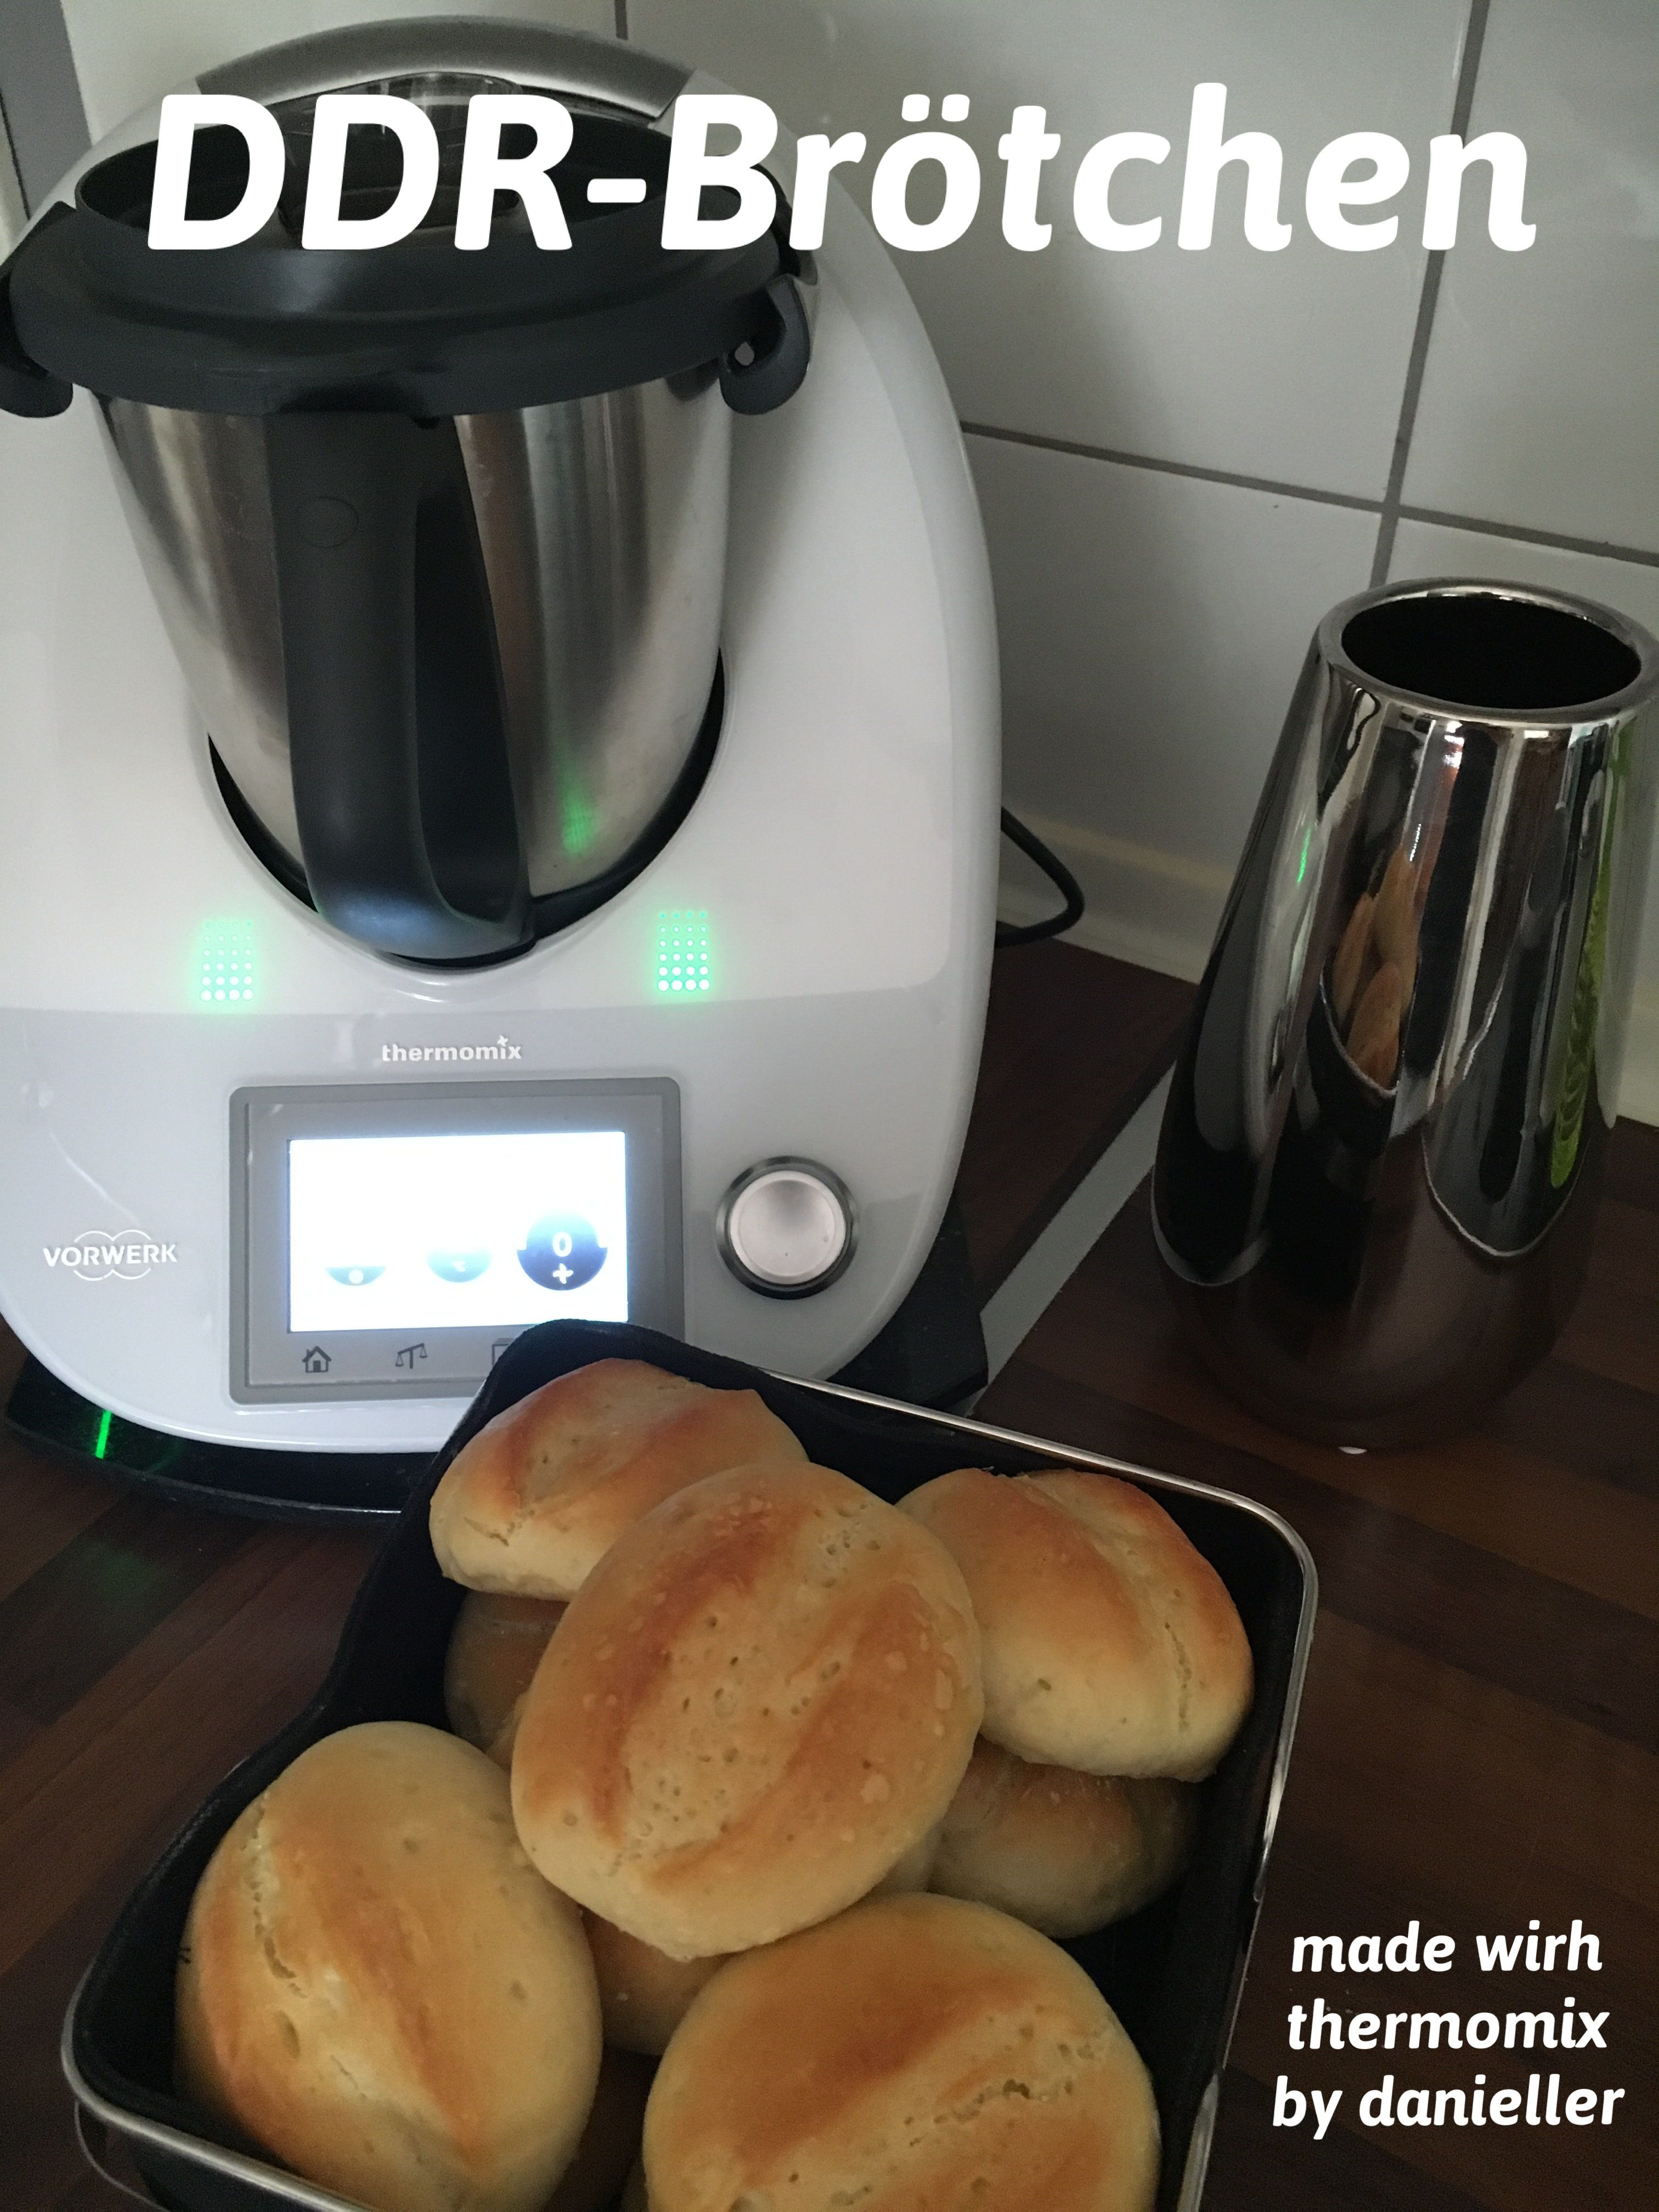 Stockbrot Thermomix Hefe Omas Ddr Brötchen